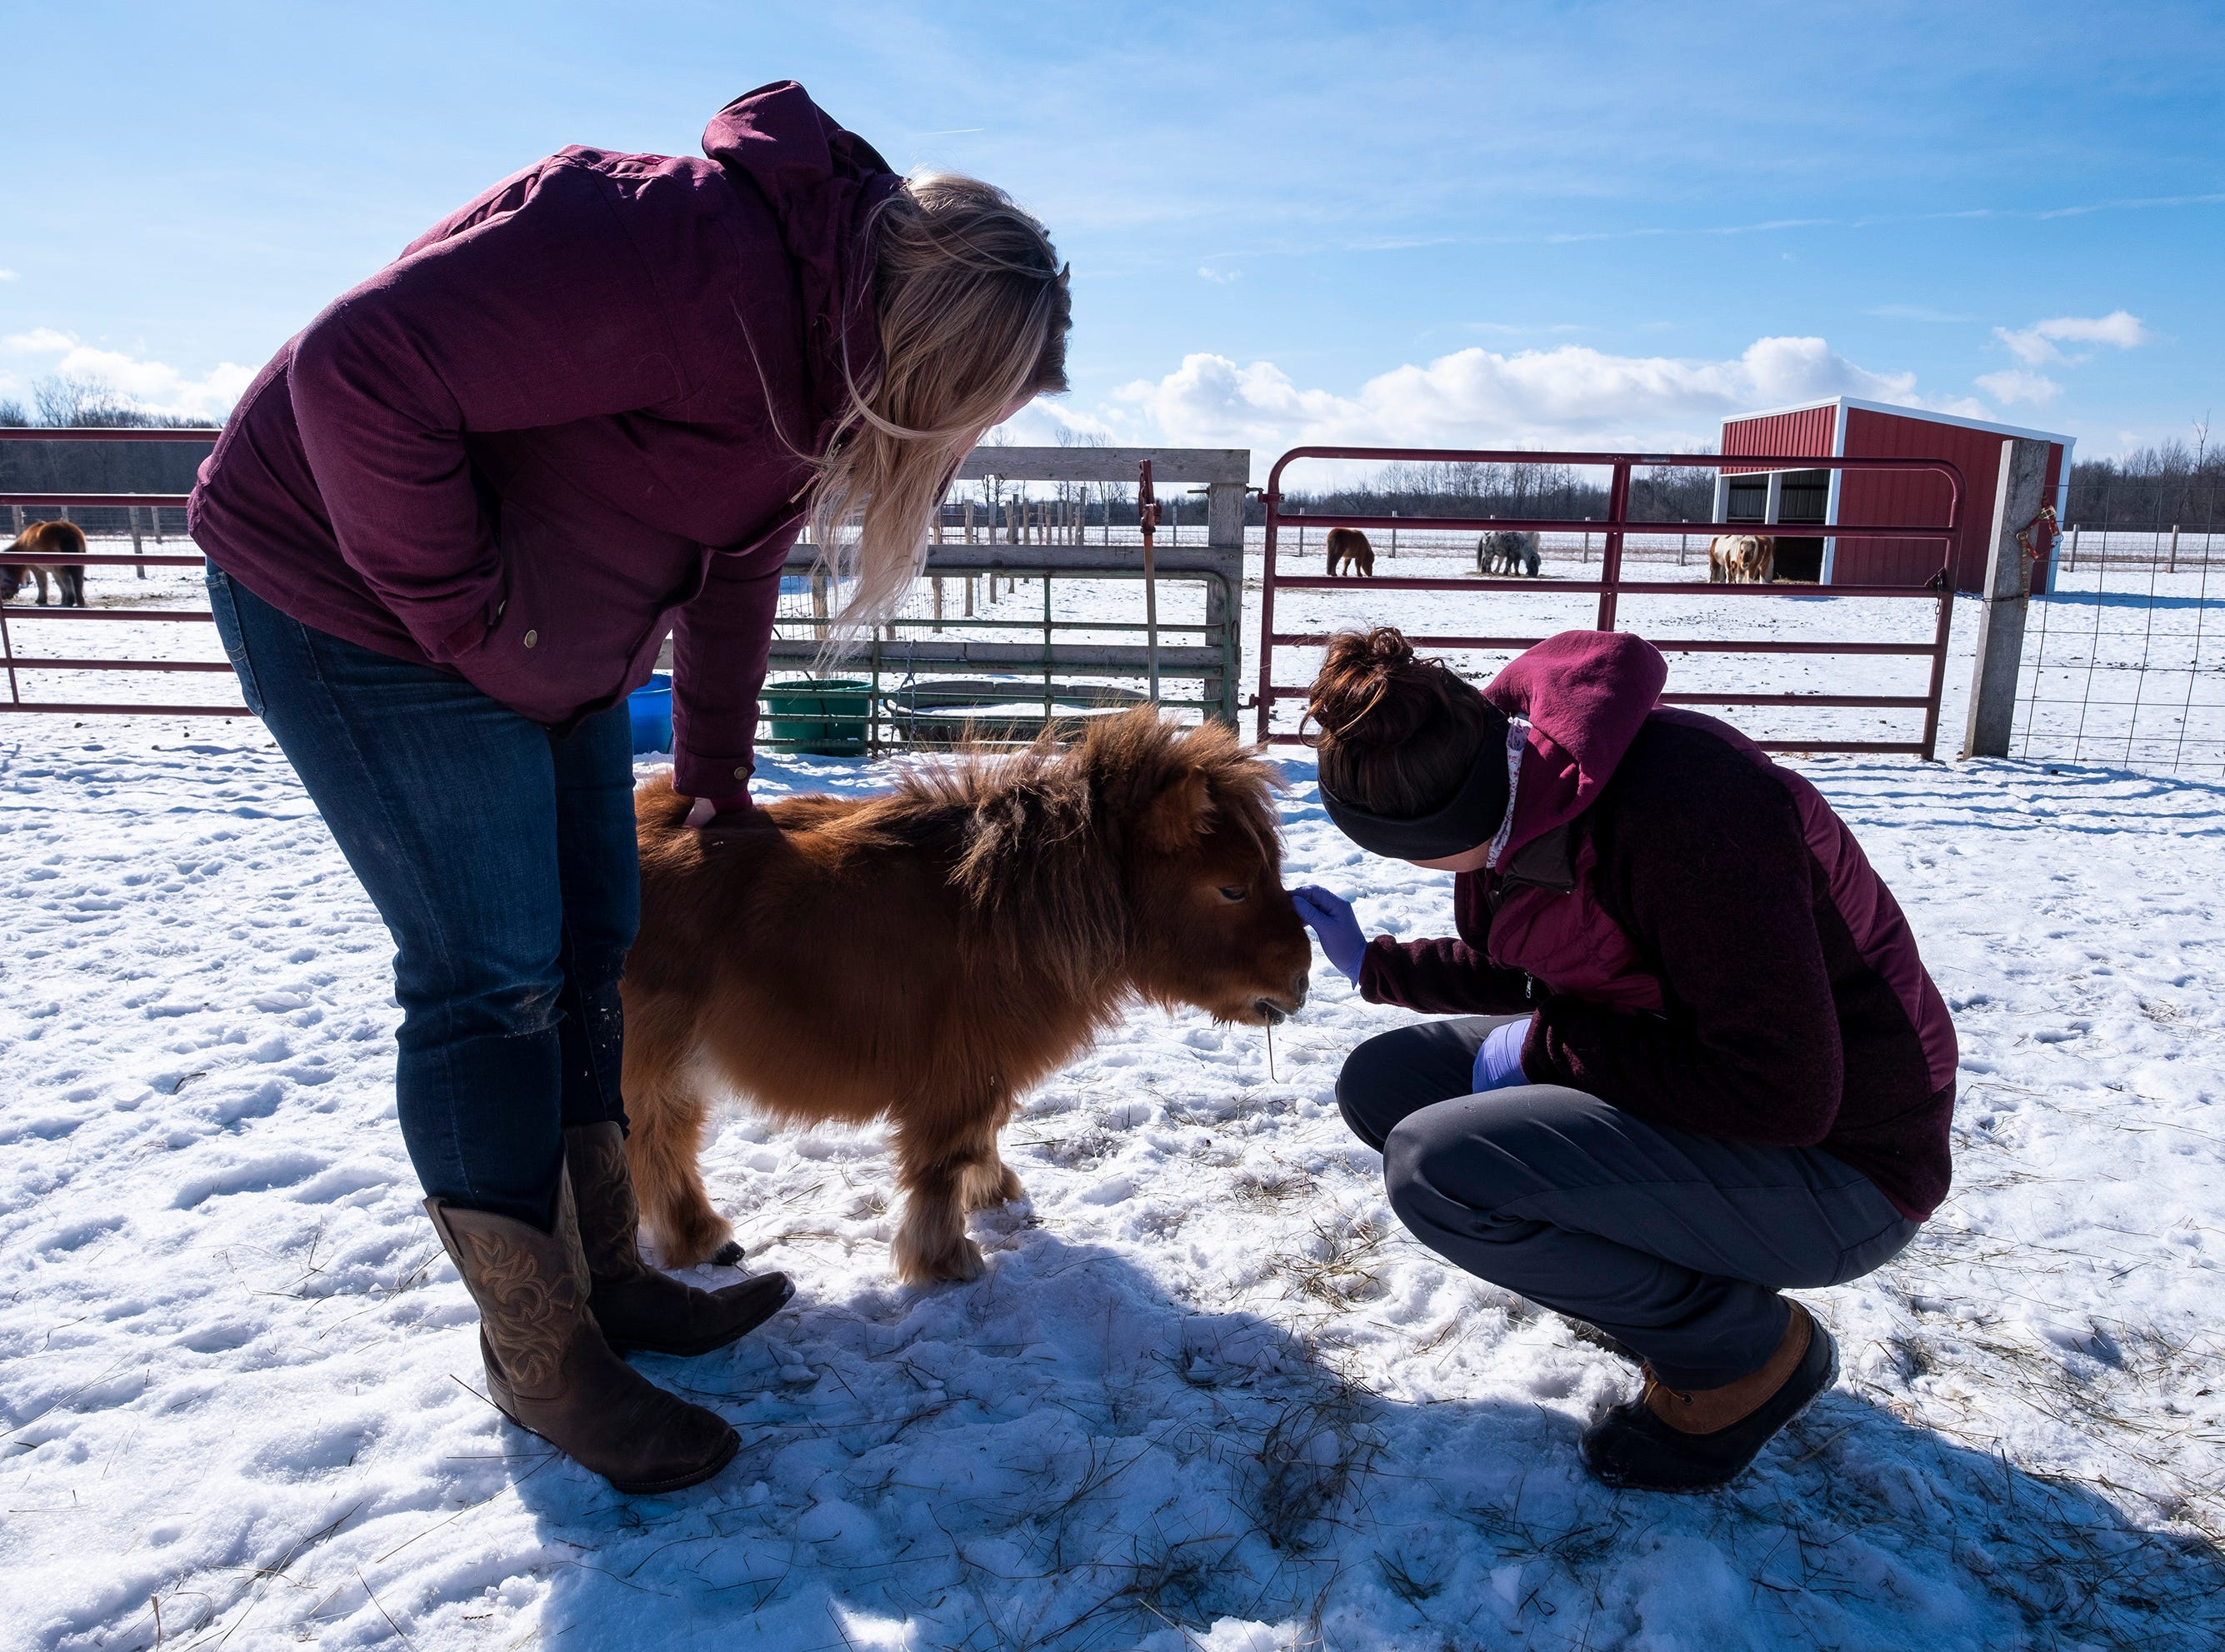 Before leaving for the day, Equine Dental Technician Natalie Hillman, owner of Great Lakes Equine Dentistry, right, and her assistant, Halley Schwab, take a minute to give Bam Bam some affection in one of the fields outside the barn.